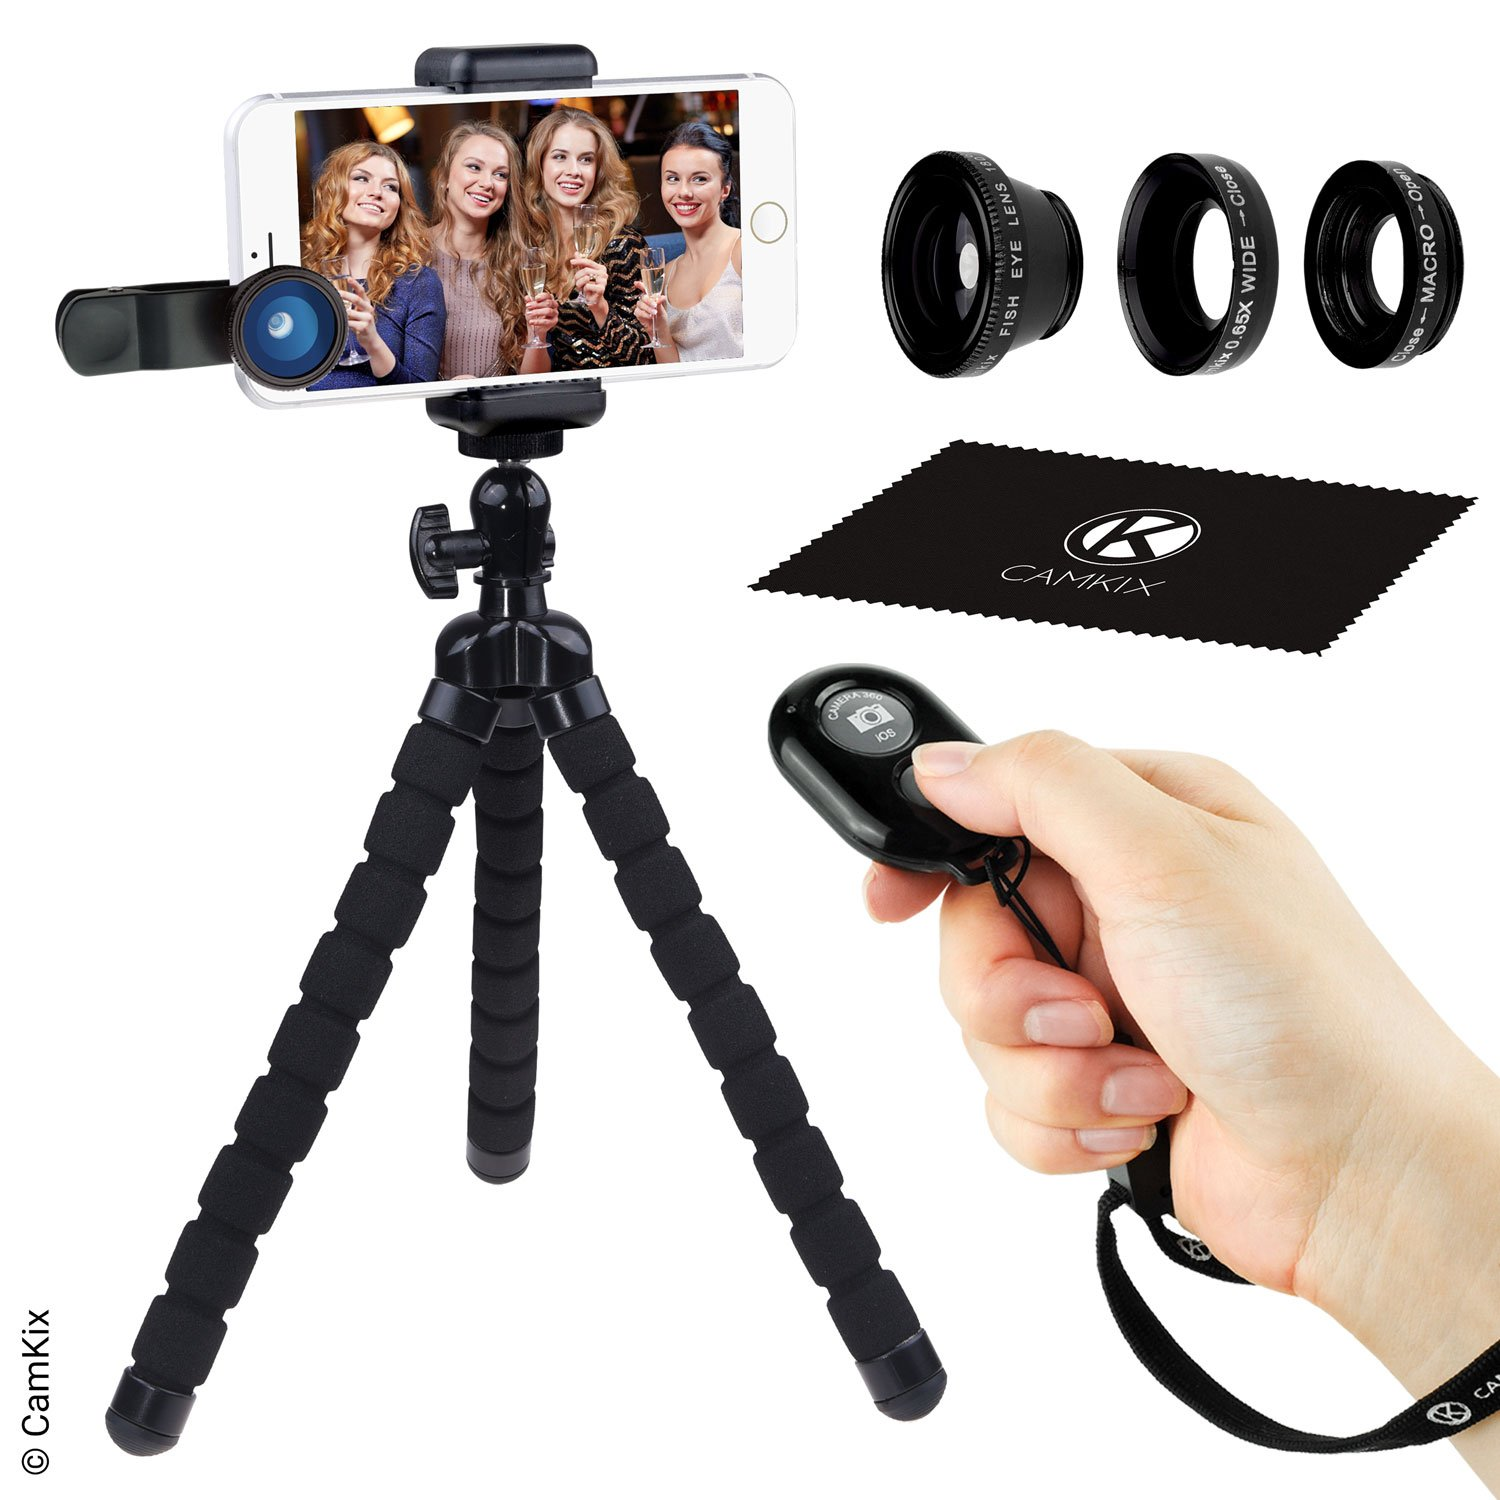 Smartphone Photography Kit - Flexible Cell Phone Tripod, Bluetooth Remote Control Camera Shutter and 3in1 Lens Kit - Universal Octopus pod - Fish Eye, Macro and Wide Angle Lens - for iPhone and more CamKix D0268-UTL-BLA